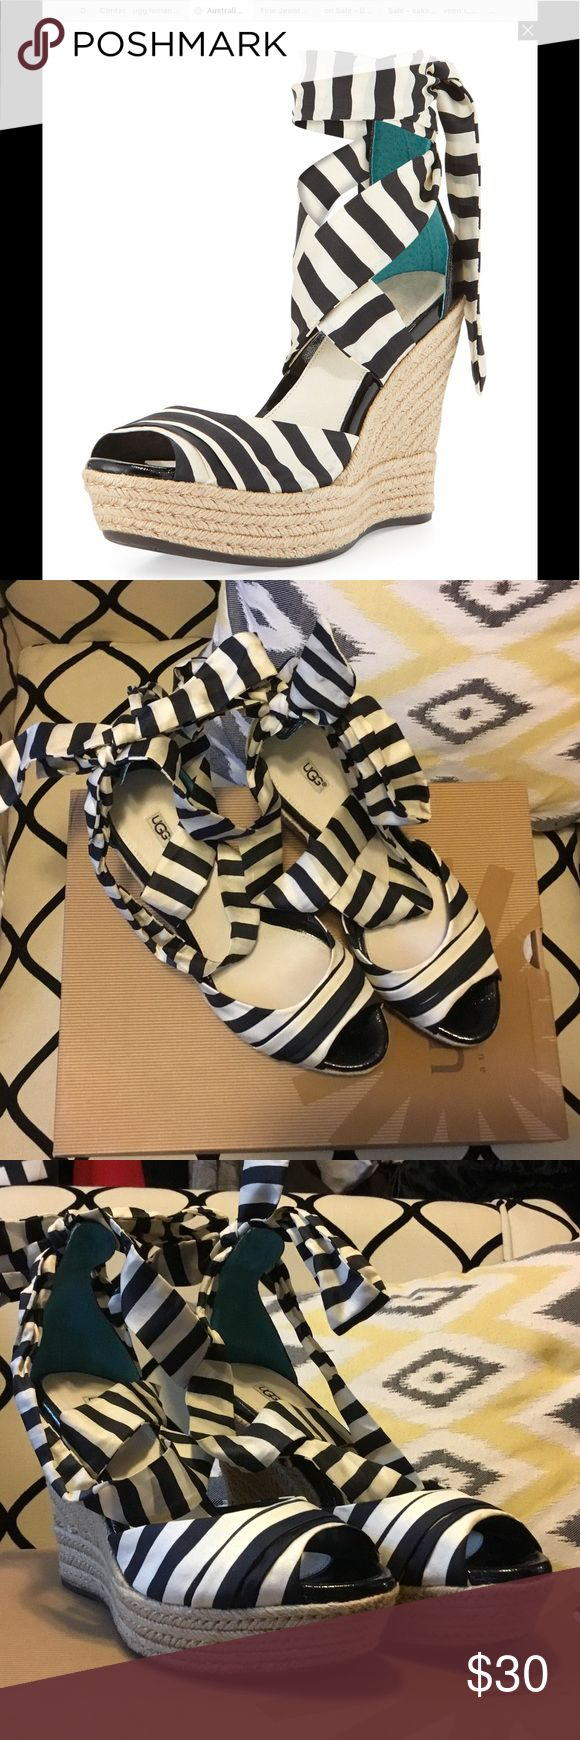 UGG Australia Lucianna Shoe 9 Blk/White Ugg Australia black and white espadrilles wedge sandals. Great condition, they just don't fit anymore or I'd keep them. Extremely comfortable! UGG Shoes Espadrilles